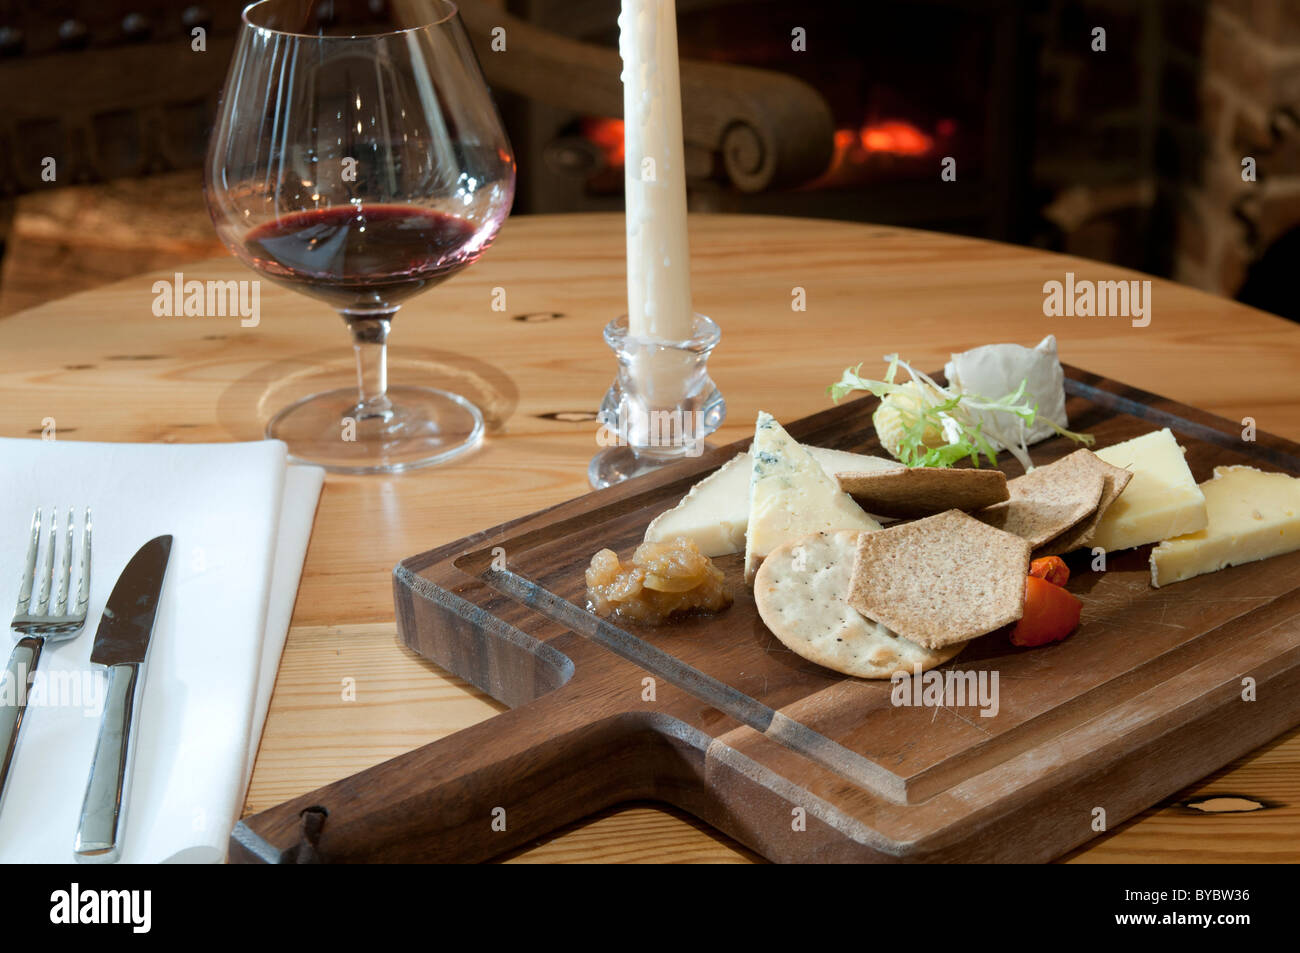 cheese board lunch port service fireside - Stock Image